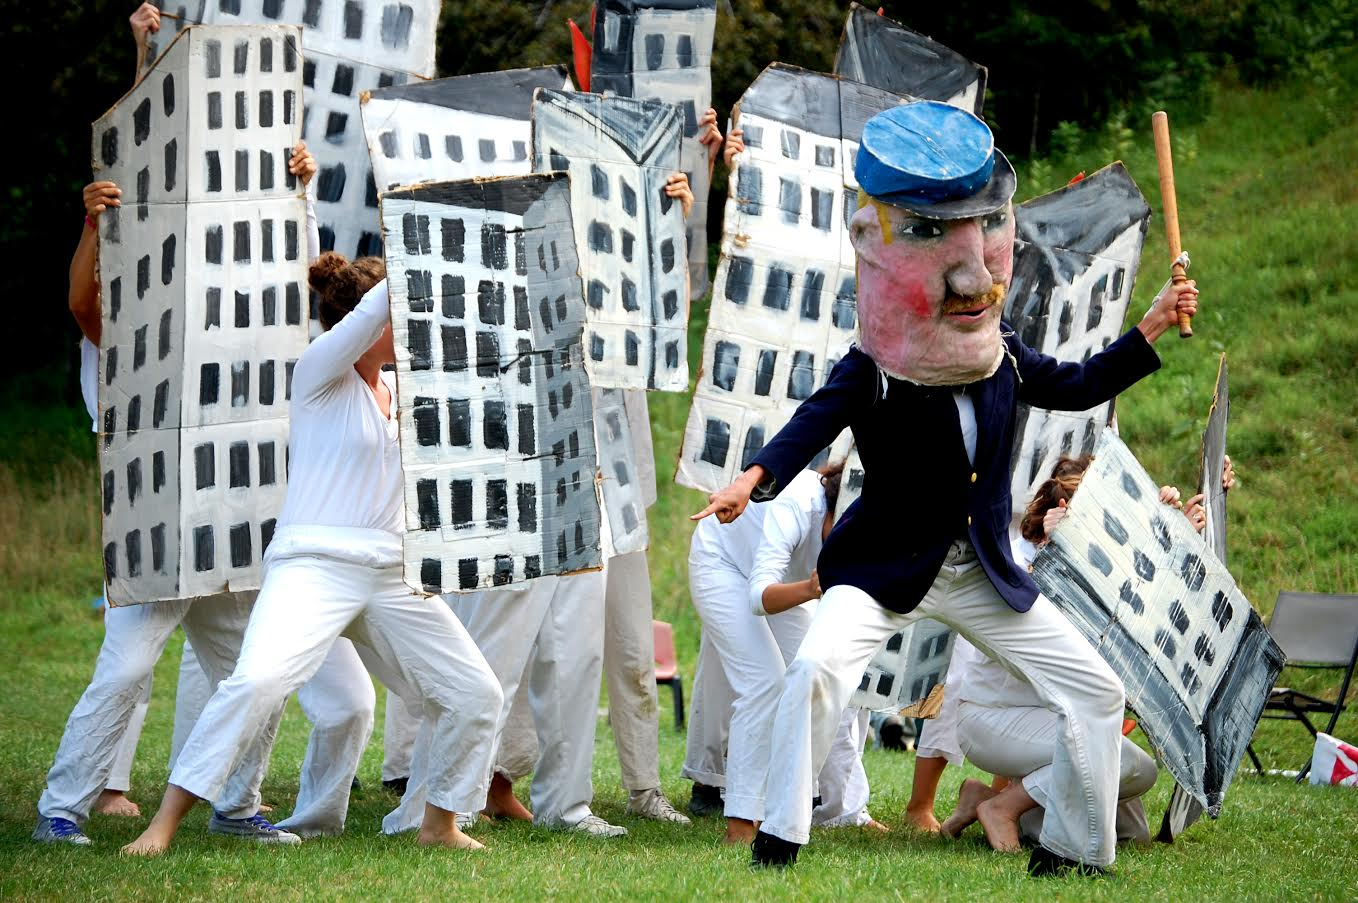 Bread & Puppet Theatre, known for its cheaply made, papier mache puppets and socially conscious performances, will perform in SUNY Buffalo State's Donald Savage Theatre on May 23.